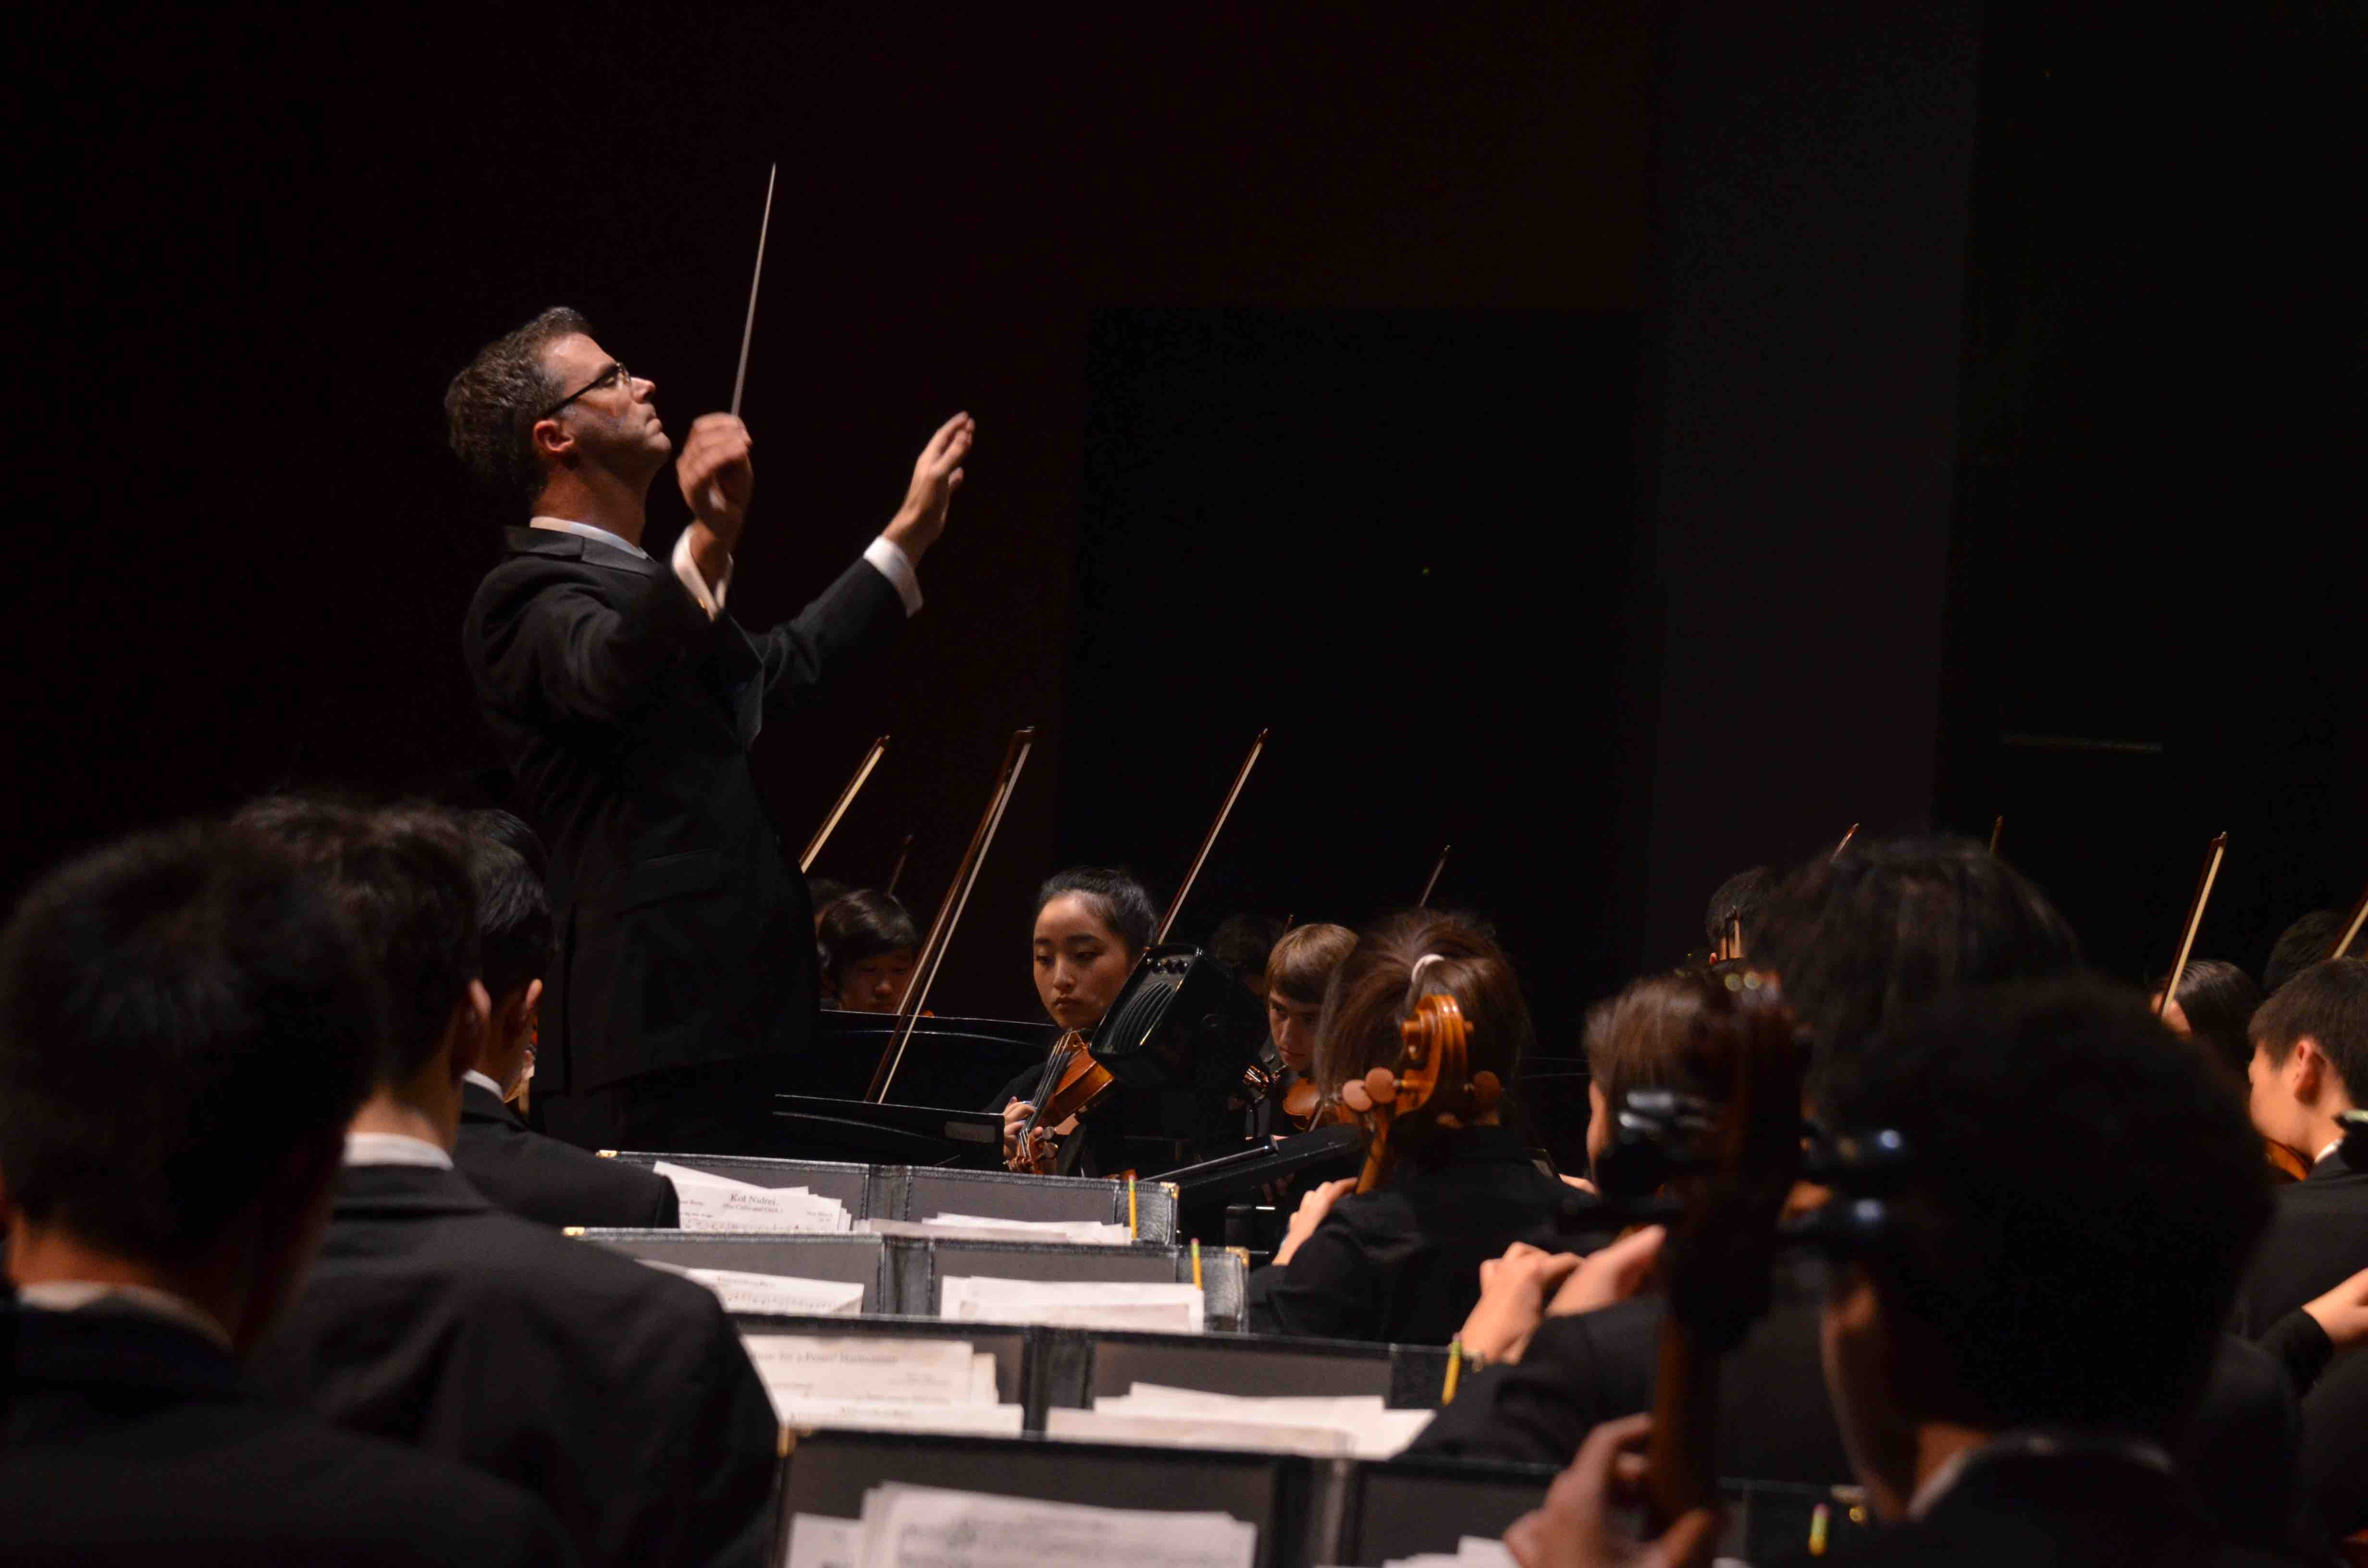 Orchestra+teacher+Chris+Florio+conducts+the+ensemble+during+the+show.+The+Winter+Concert+took+place+on+January+13+at+the+Mexican+Heritage+Theater.